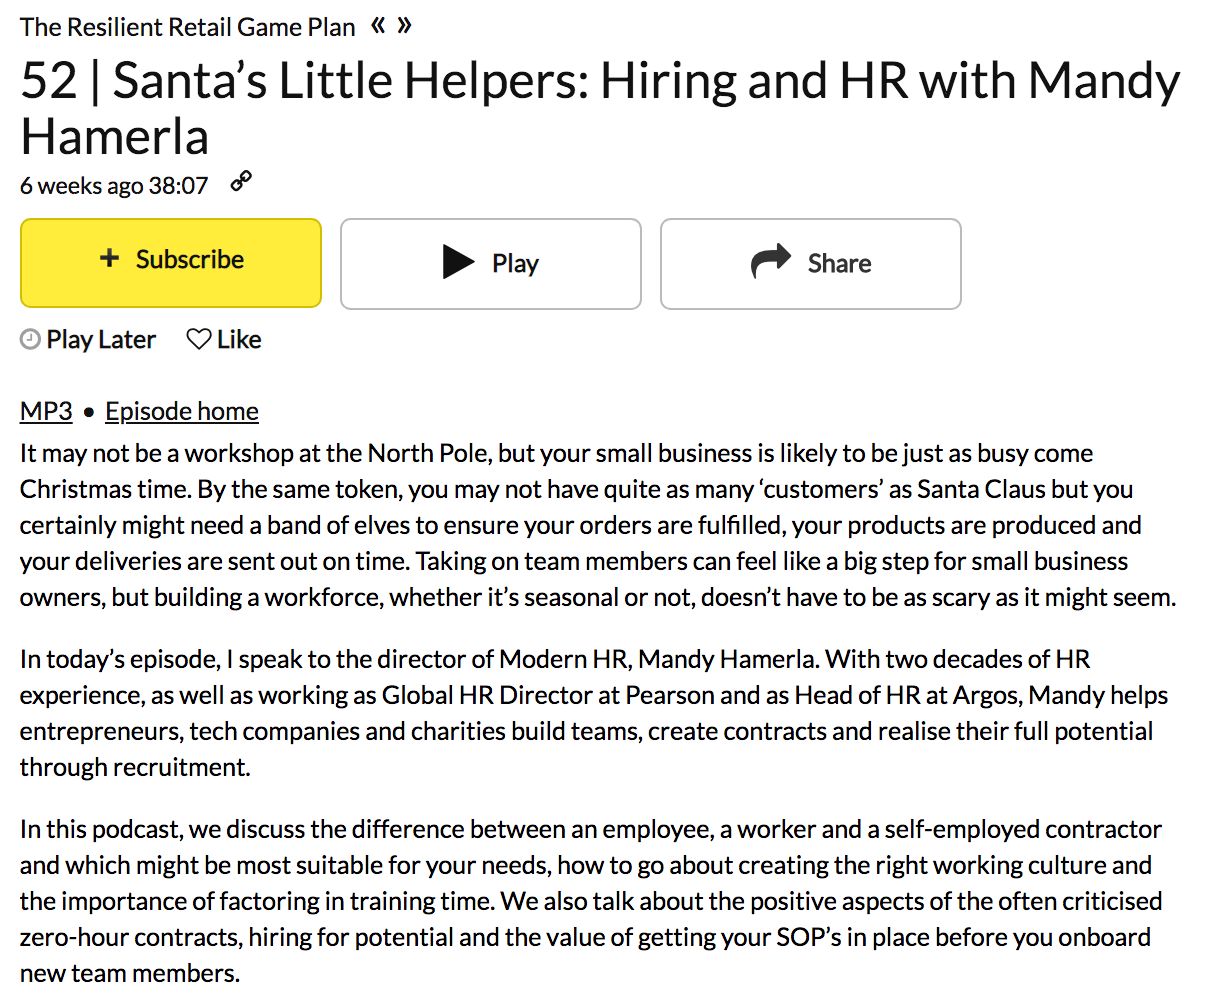 HR Consultant for Small Businesses, UK   Modern HR,